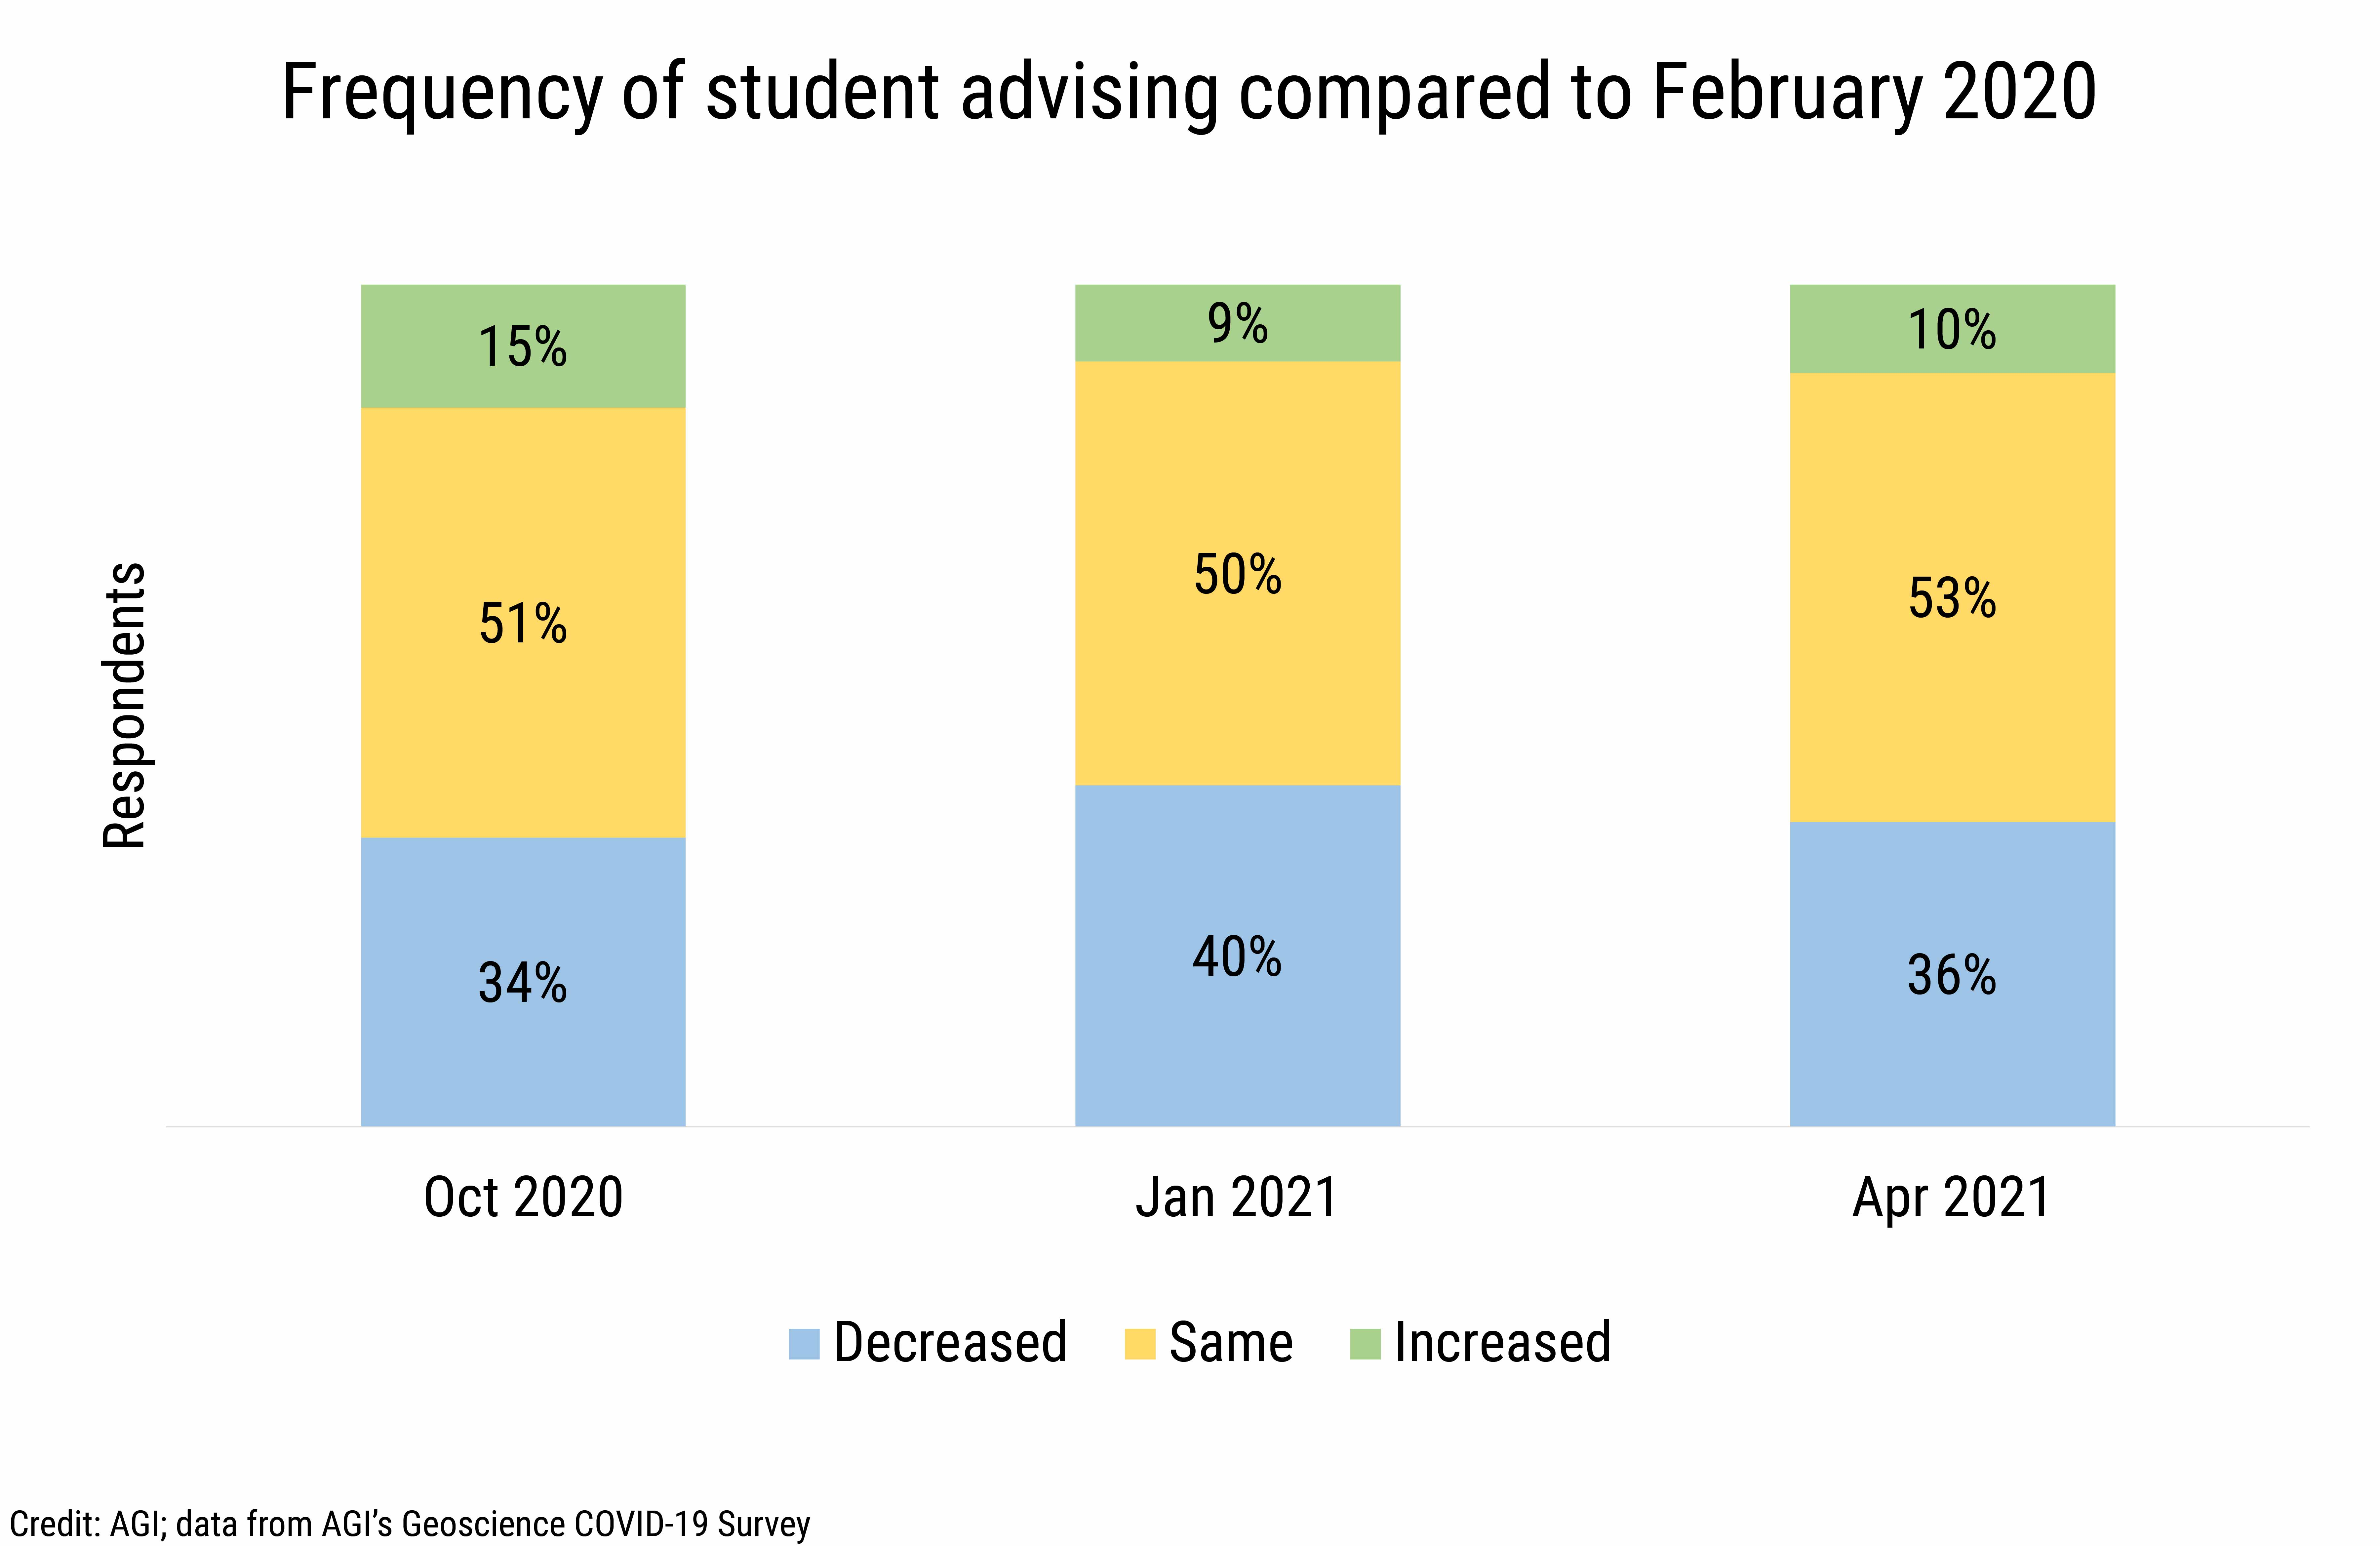 DB_2021-015 chart 04: Frequency of student advising compared to February 2020 (Credit: AGI; data from AGI's Geoscience COVID-19 Survey)